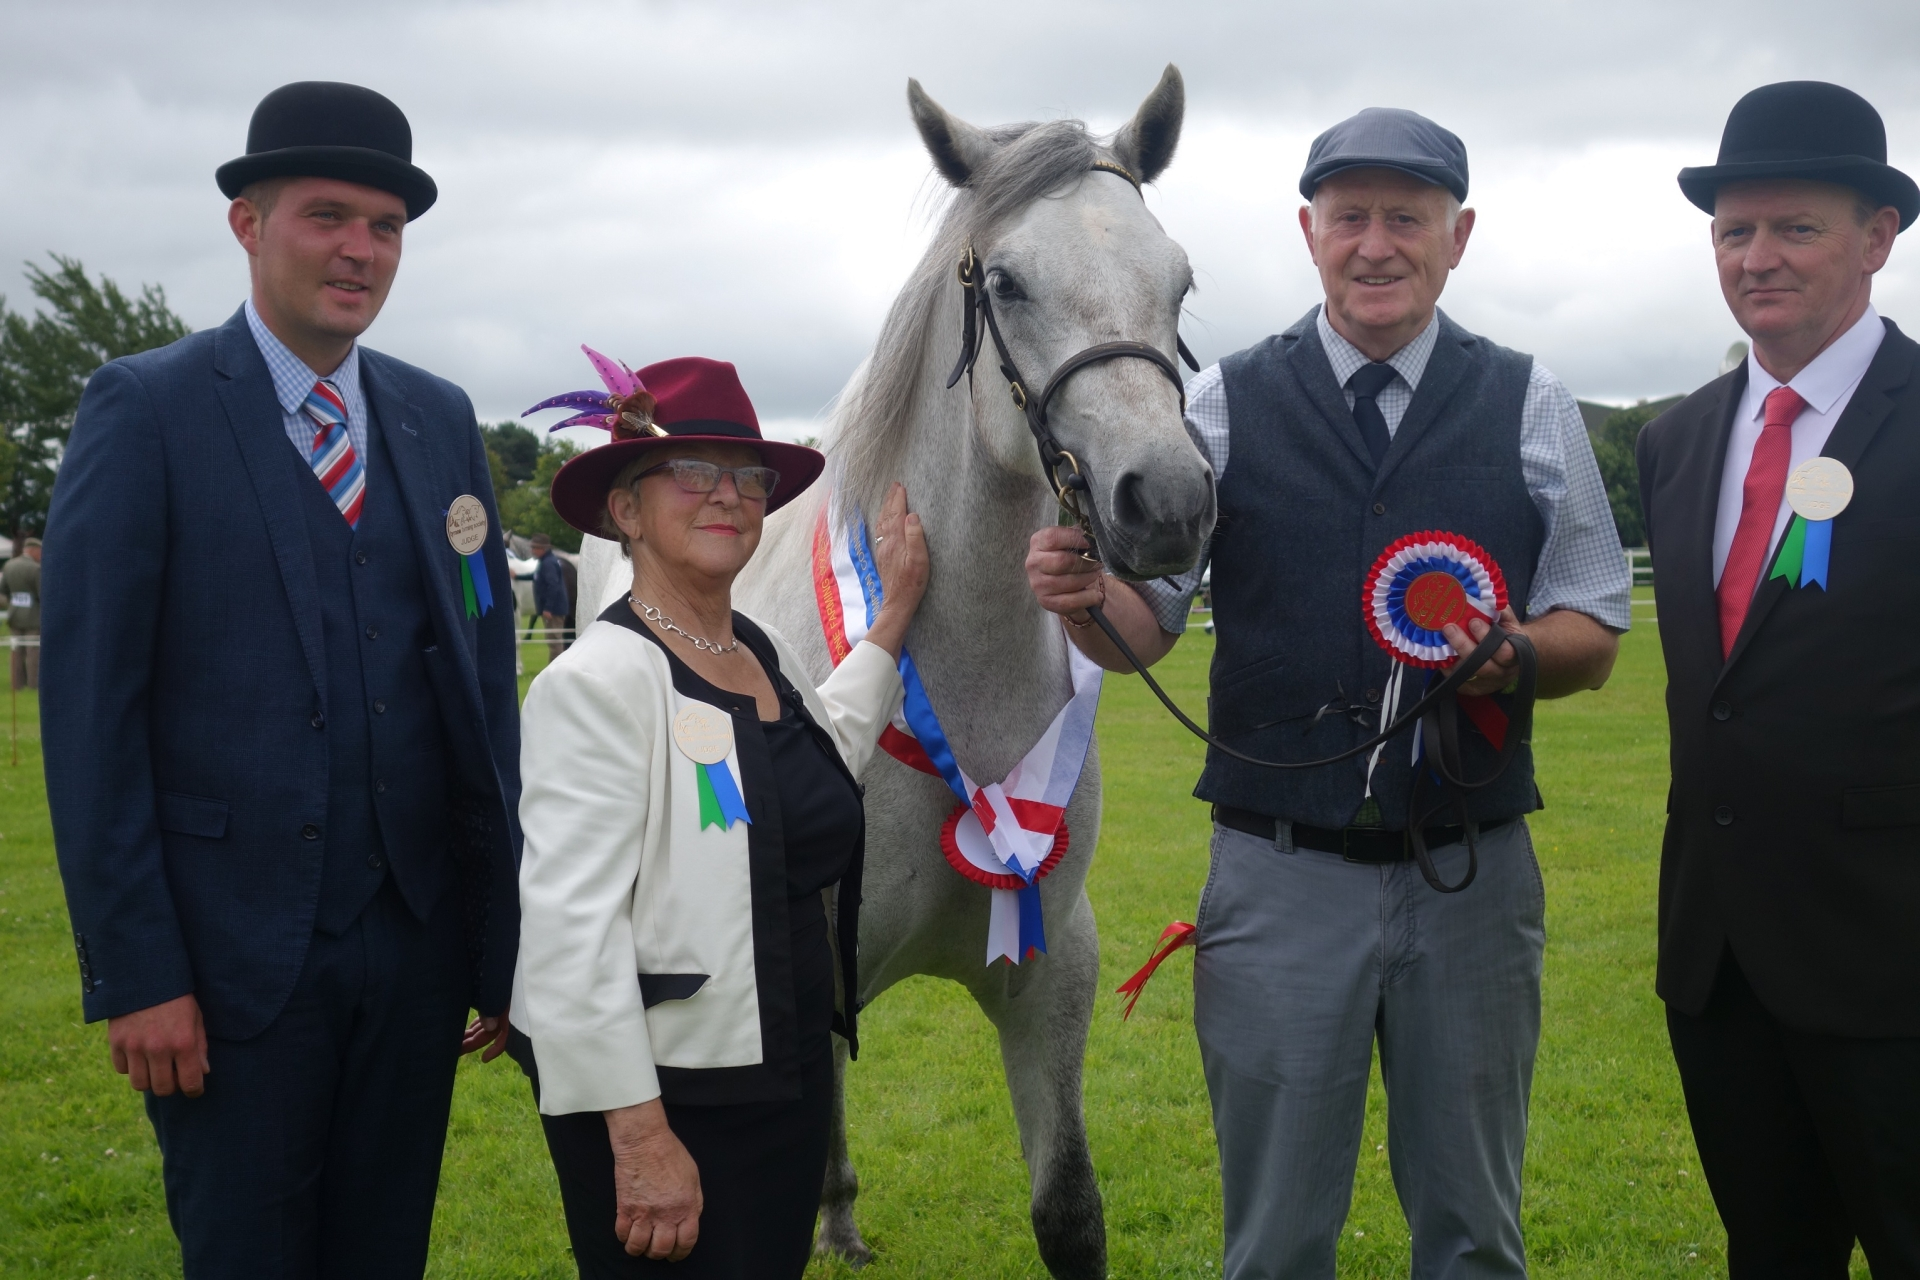 Judge Peter O'Malley, right, with fellow judges & Connemara Pony Class Winner James Naan, second right, at the Omagh Show